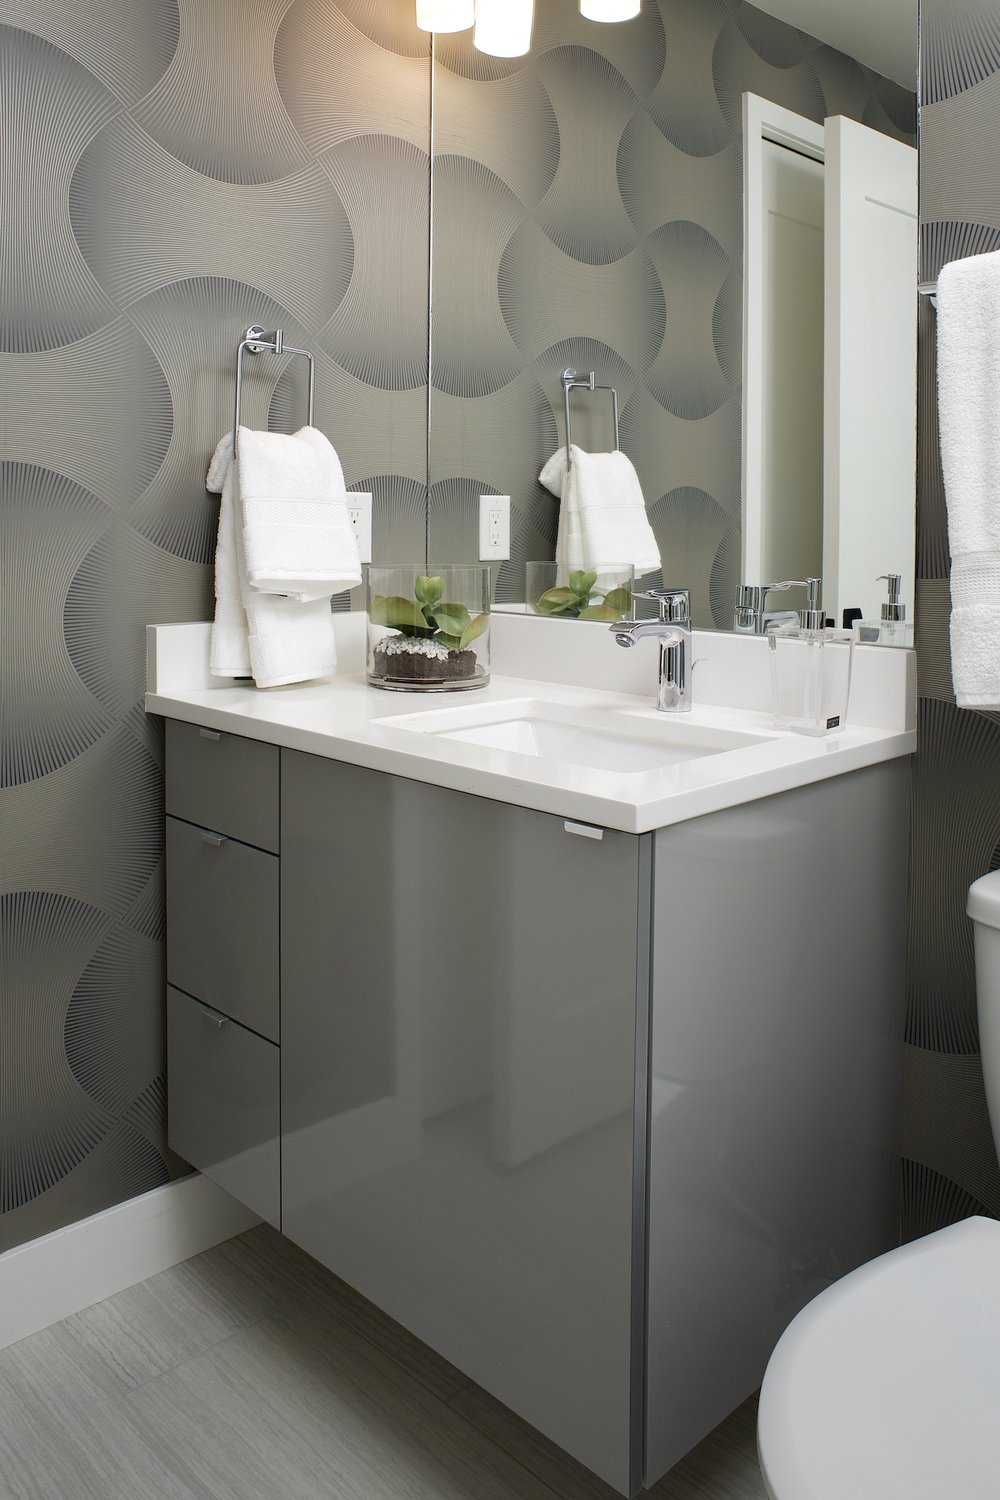 showhouse guest gray vanity.jpg